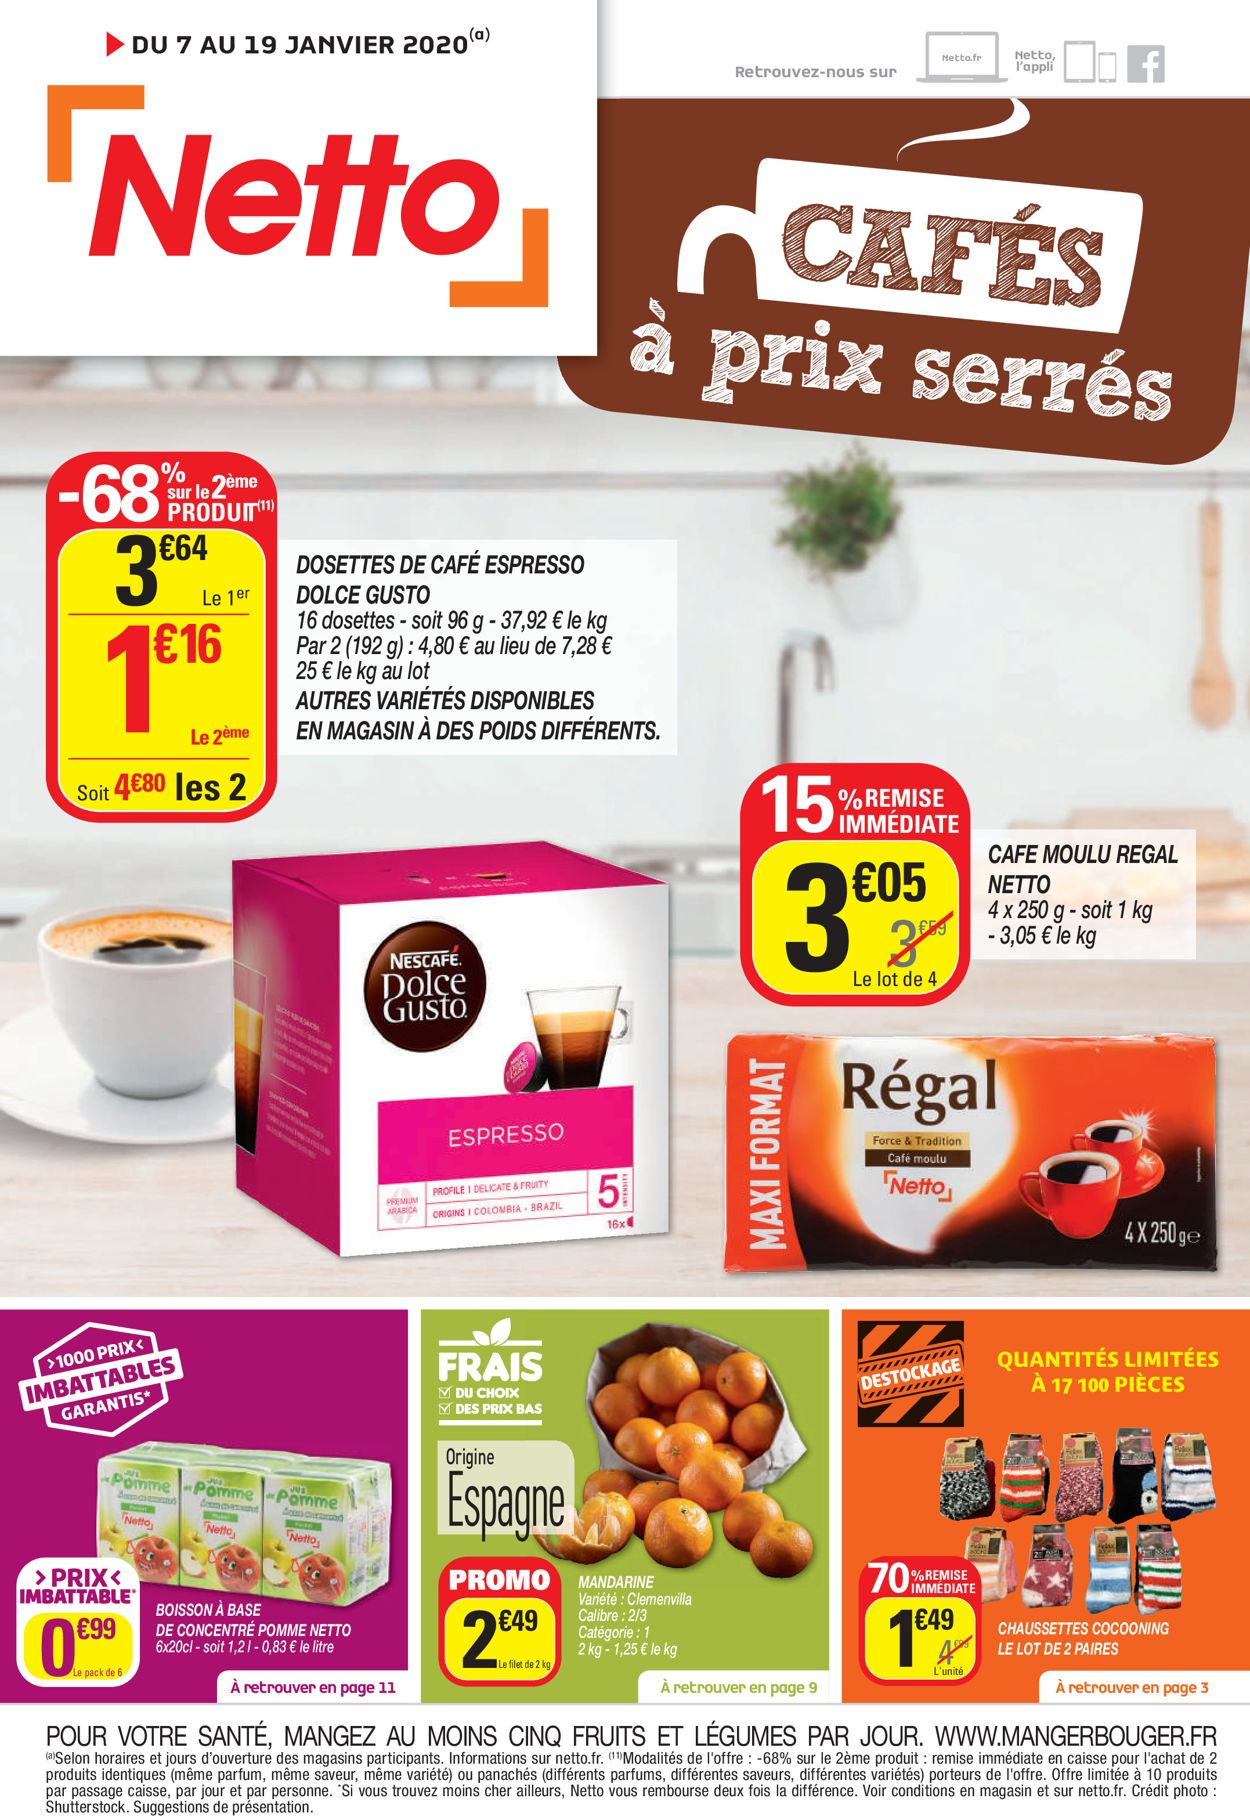 Netto Catalogue - 07.01-19.01.2020